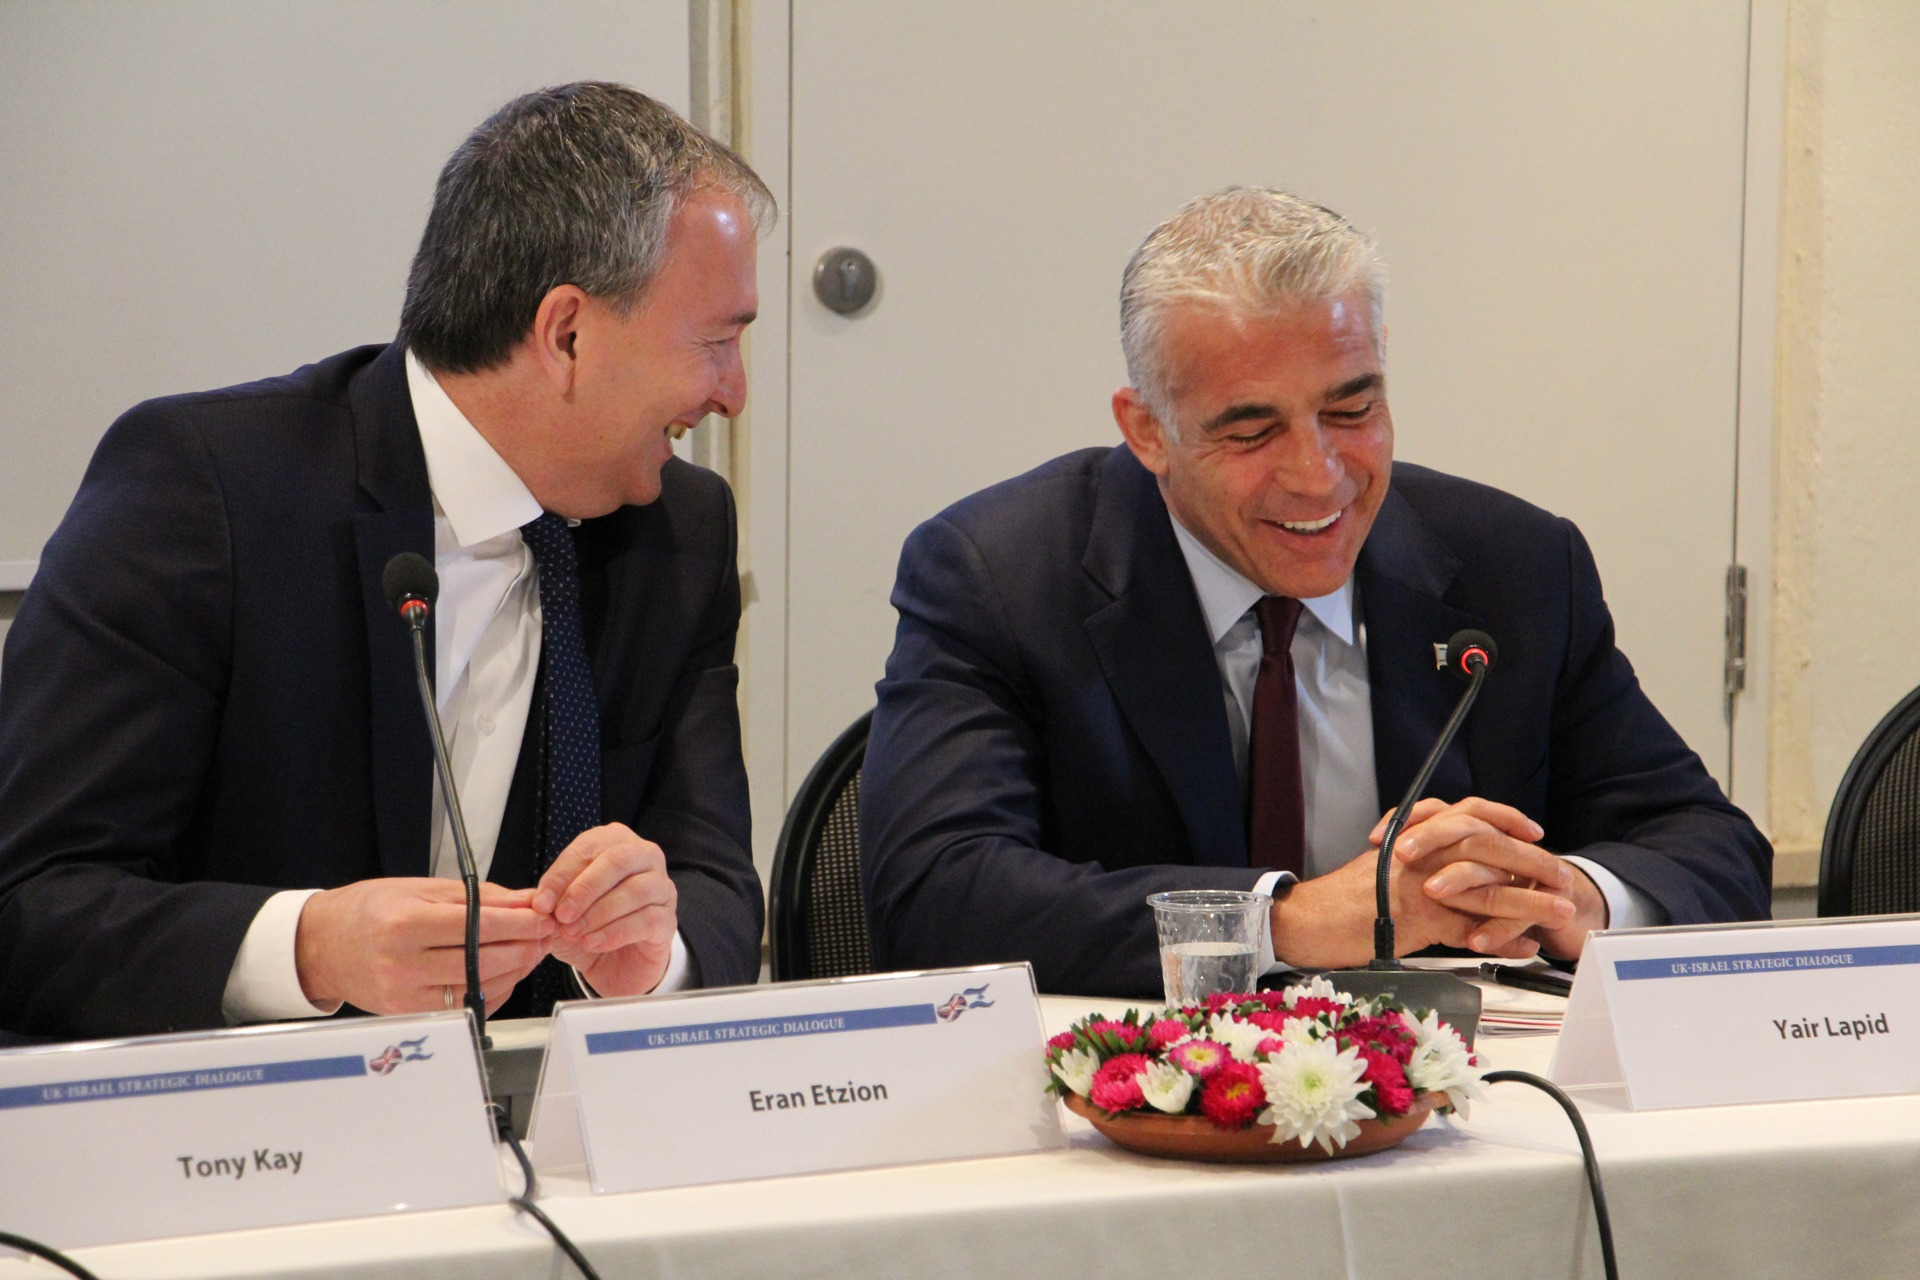 MK Yair Lapid and the Director of the Forum of Strategic Dialogue (FSD) Eran Etzion